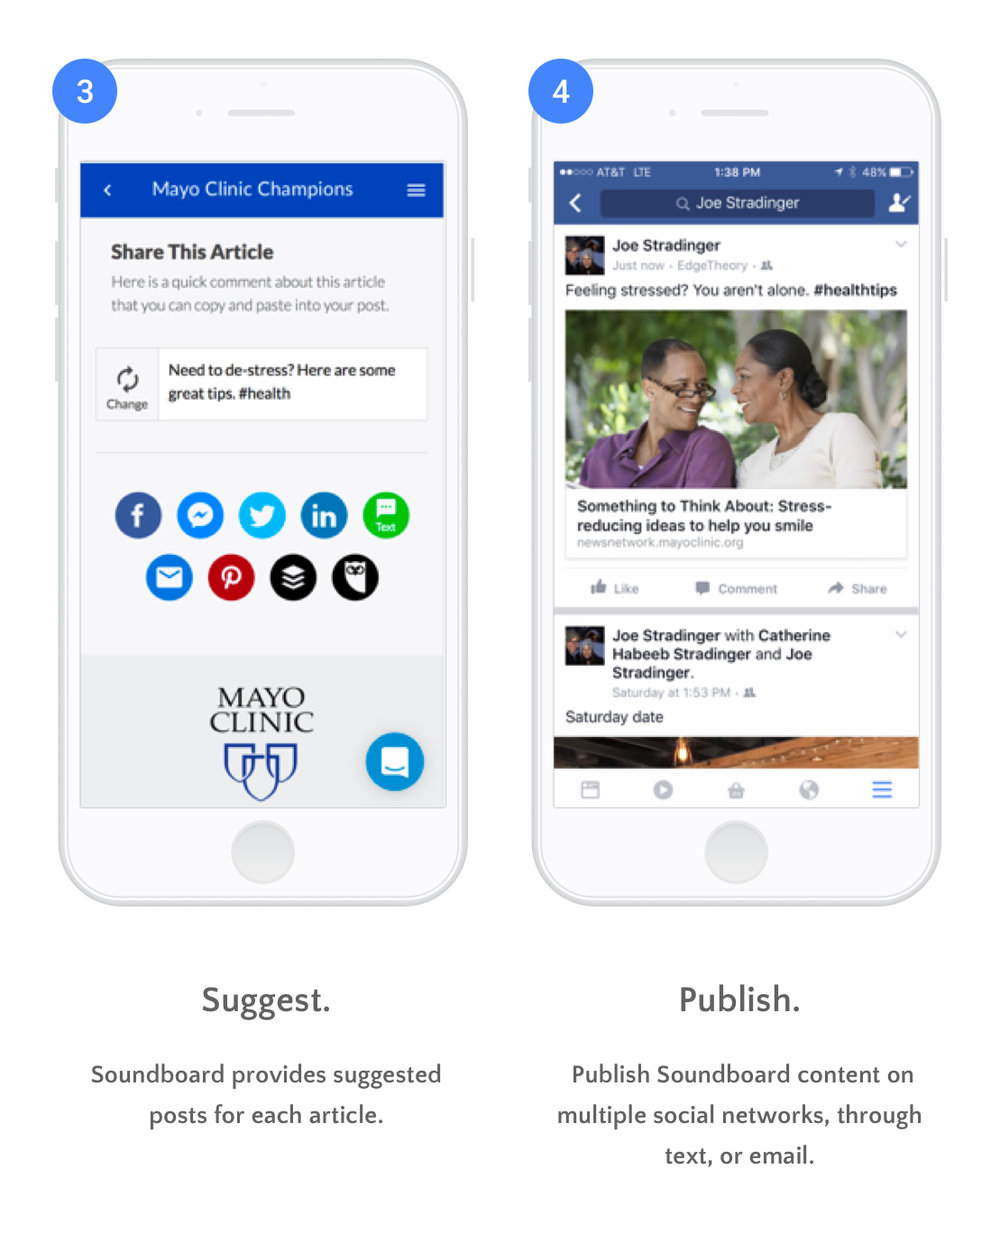 3. Soundboard provides suggested posts for each article.  4. Publish Soundboard content on multiple social networks, through text, or email.